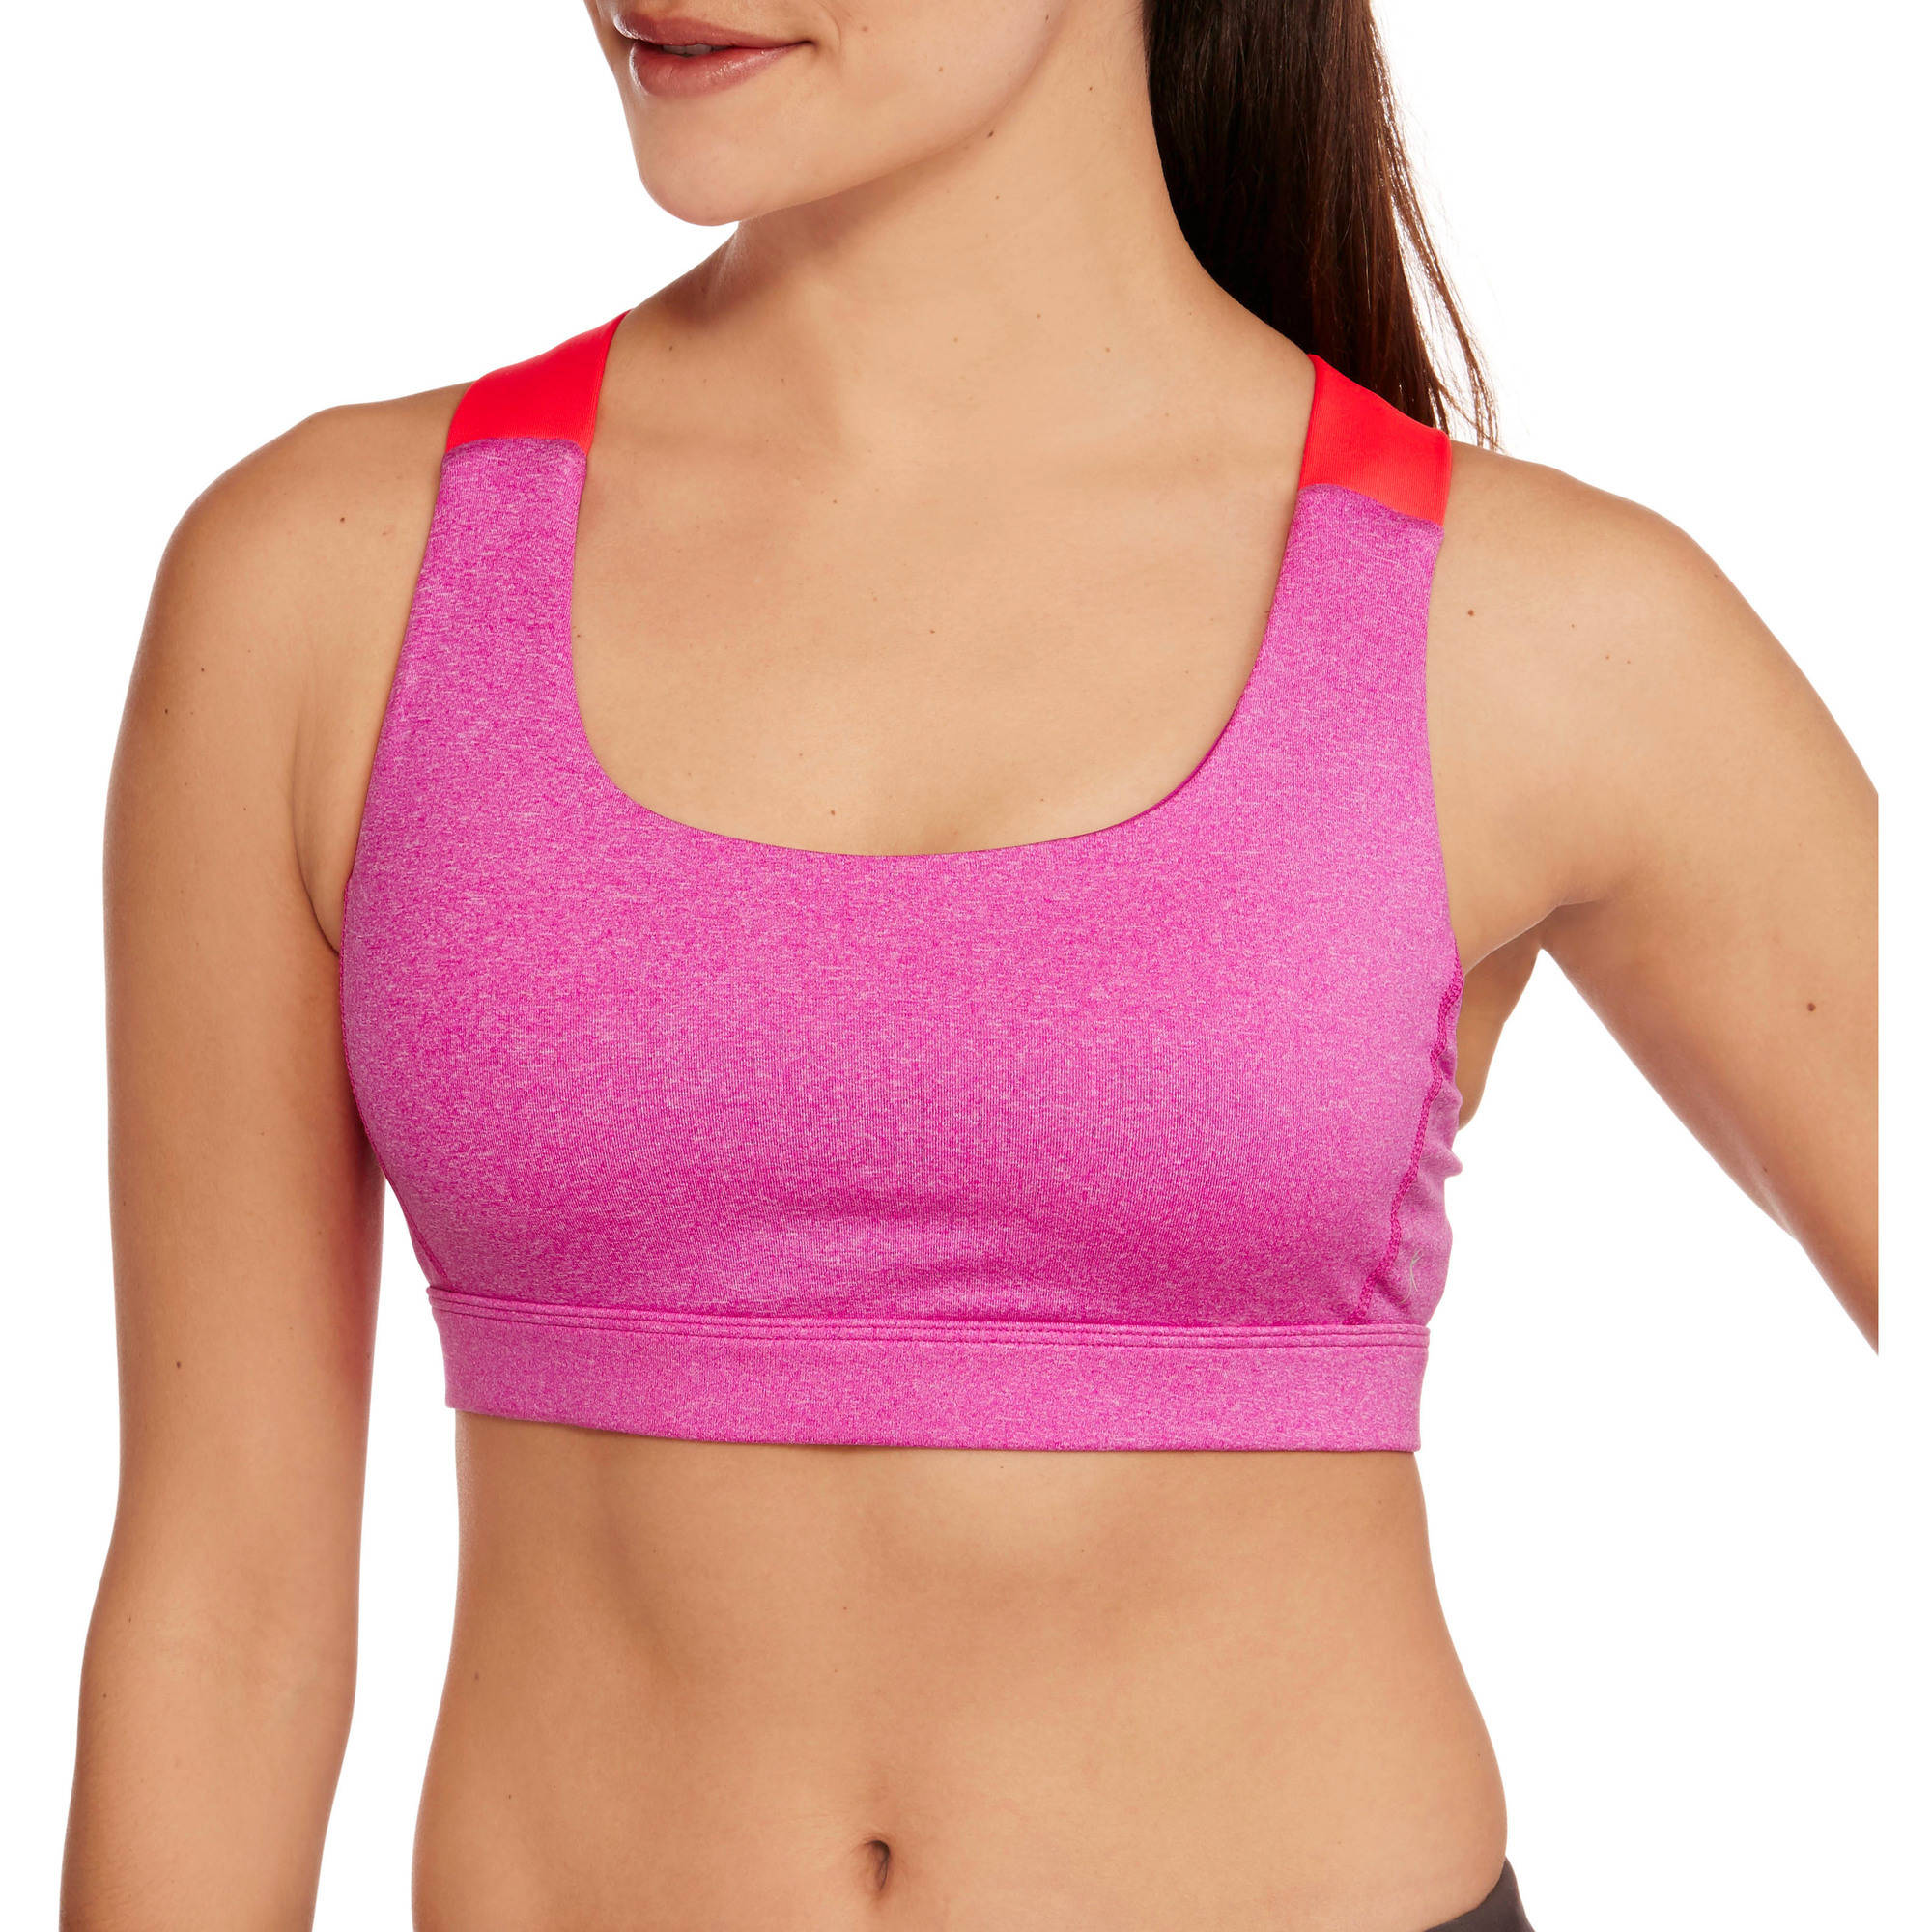 Danskin Now Women's High Impact Extreme Sports Bra with Back Detail